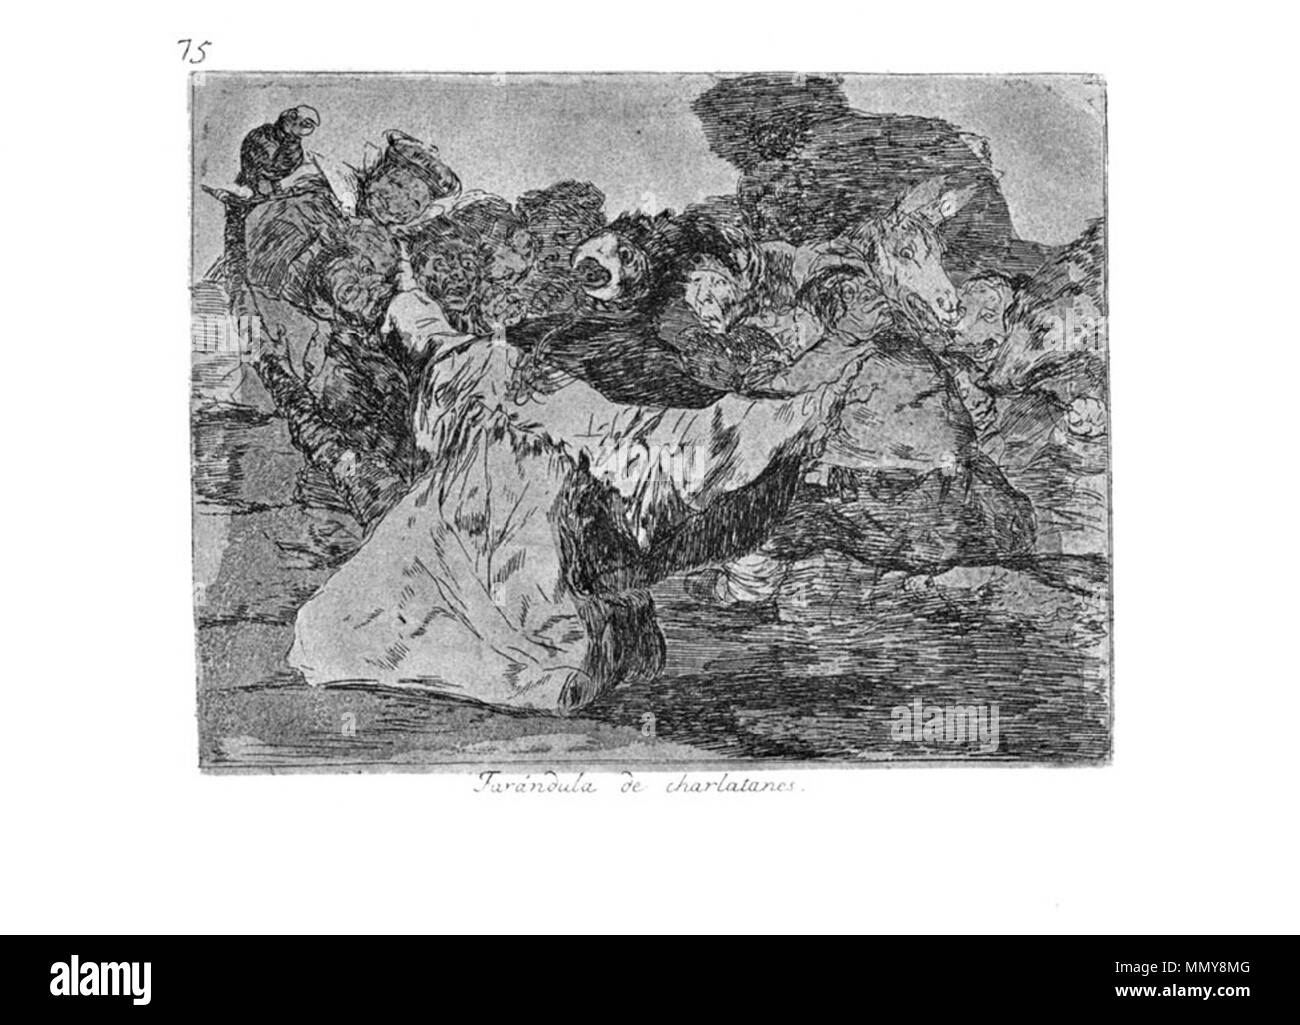 .  Plate 75: Farándula de charlatanes (Troupe of charlatans)  . 1810s.   Francisco Goya (1746–1828)   Alternative names Francisco Goya Lucientes, Francisco de Goya y Lucientes, Francisco José Goya Lucientes  Description Spanish painter, printmaker, lithographer, engraver and etcher  Date of birth/death 30 March 1746 16 April 1828  Location of birth/death Fuendetodos Bordeaux  Work location Madrid, Zaragoza, Bordeaux  Authority control  : Q5432 VIAF:?54343141 ISNI:?0000 0001 2280 1608 ULAN:?500118936 LCCN:?n79003363 NLA:?36545788 WorldCat Goya-Guerra (75) - Stock Image